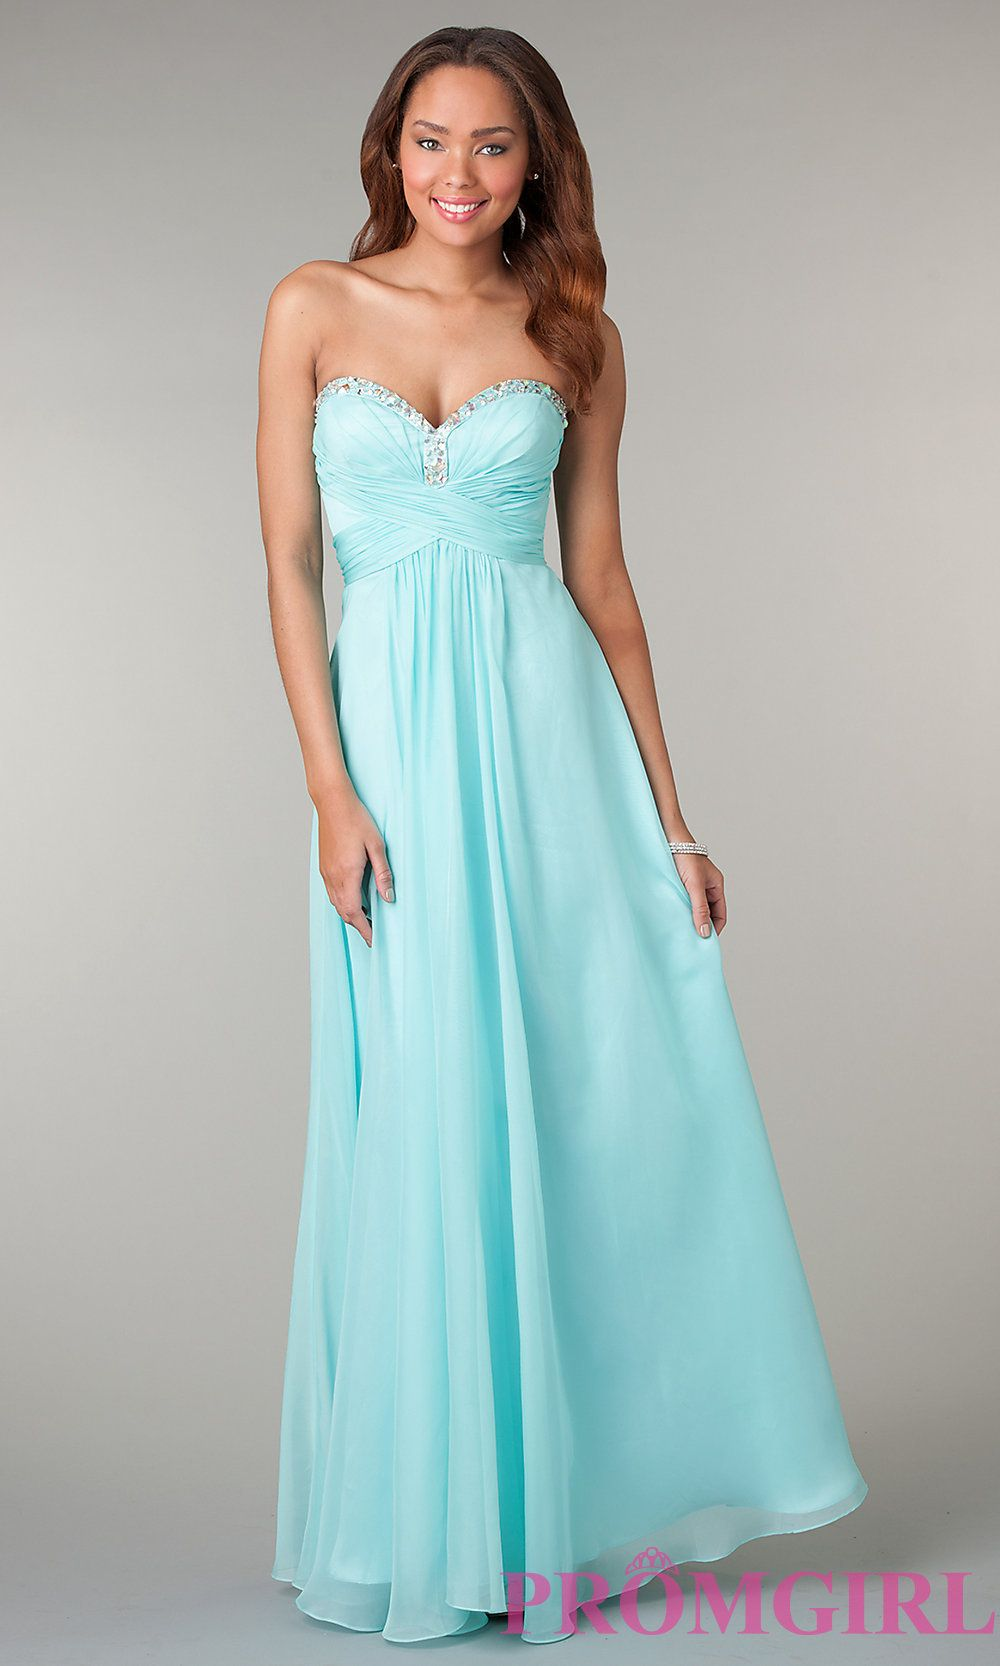 Mint Green Prom Gowns, Strapless Prom Dresses in Green- PromGirl ...